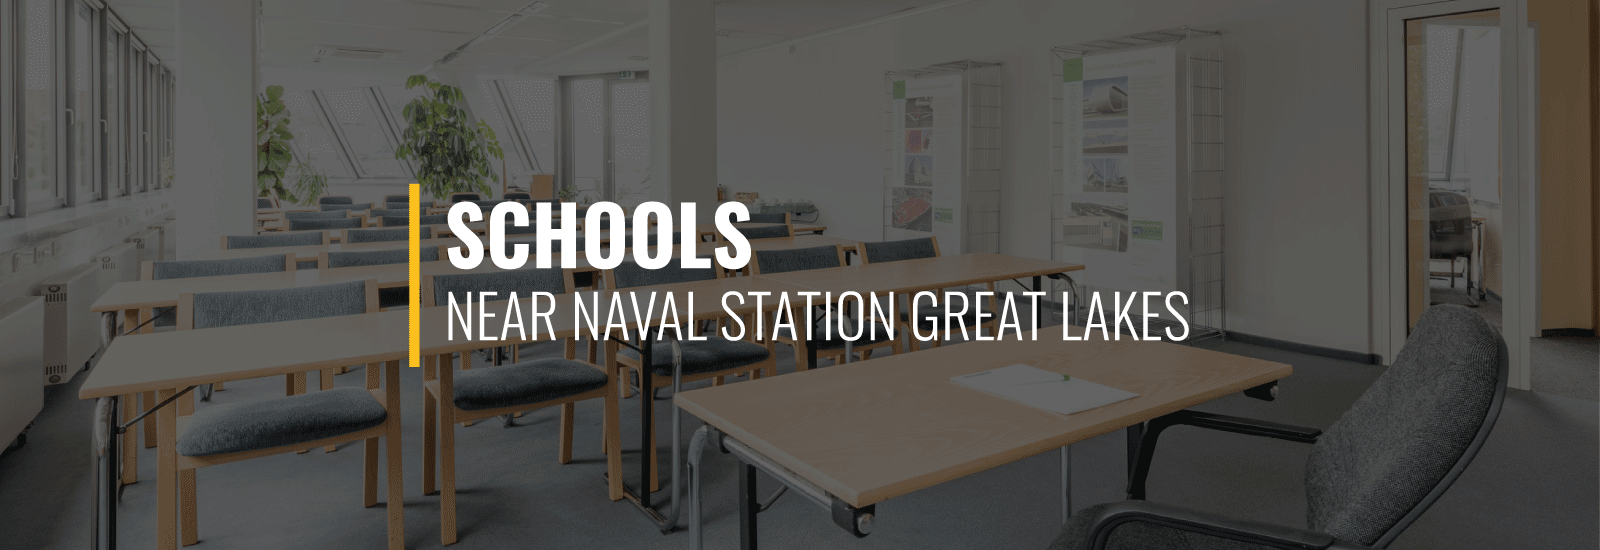 Naval Station Great Lakes Schools